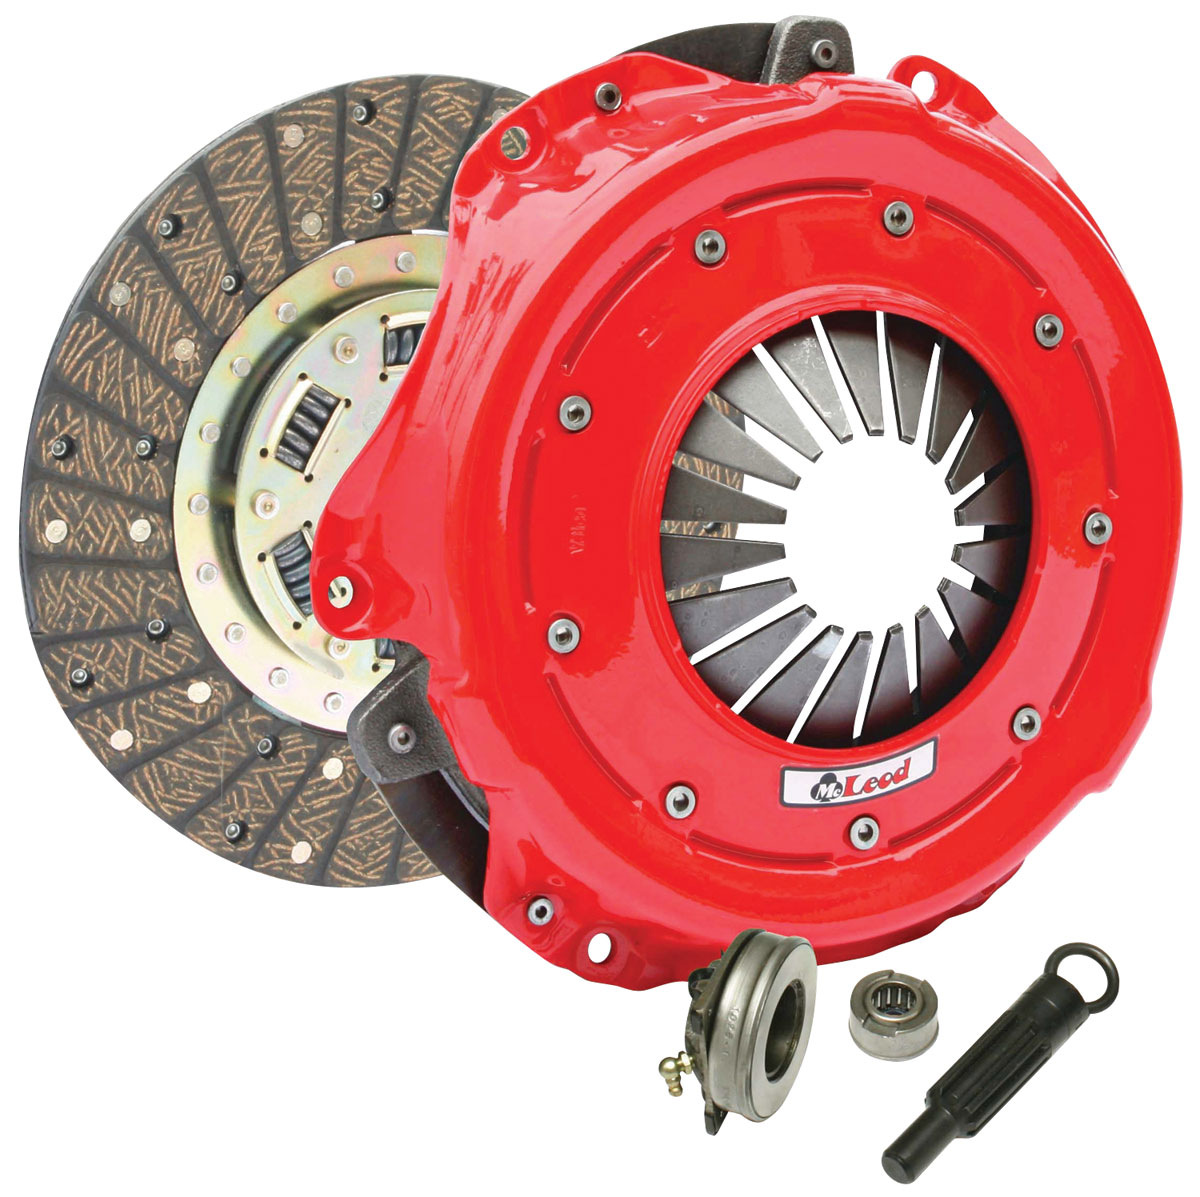 "Photo of Clutch Kits, McLeod Super Street Pro 10.5"", 26-spline"